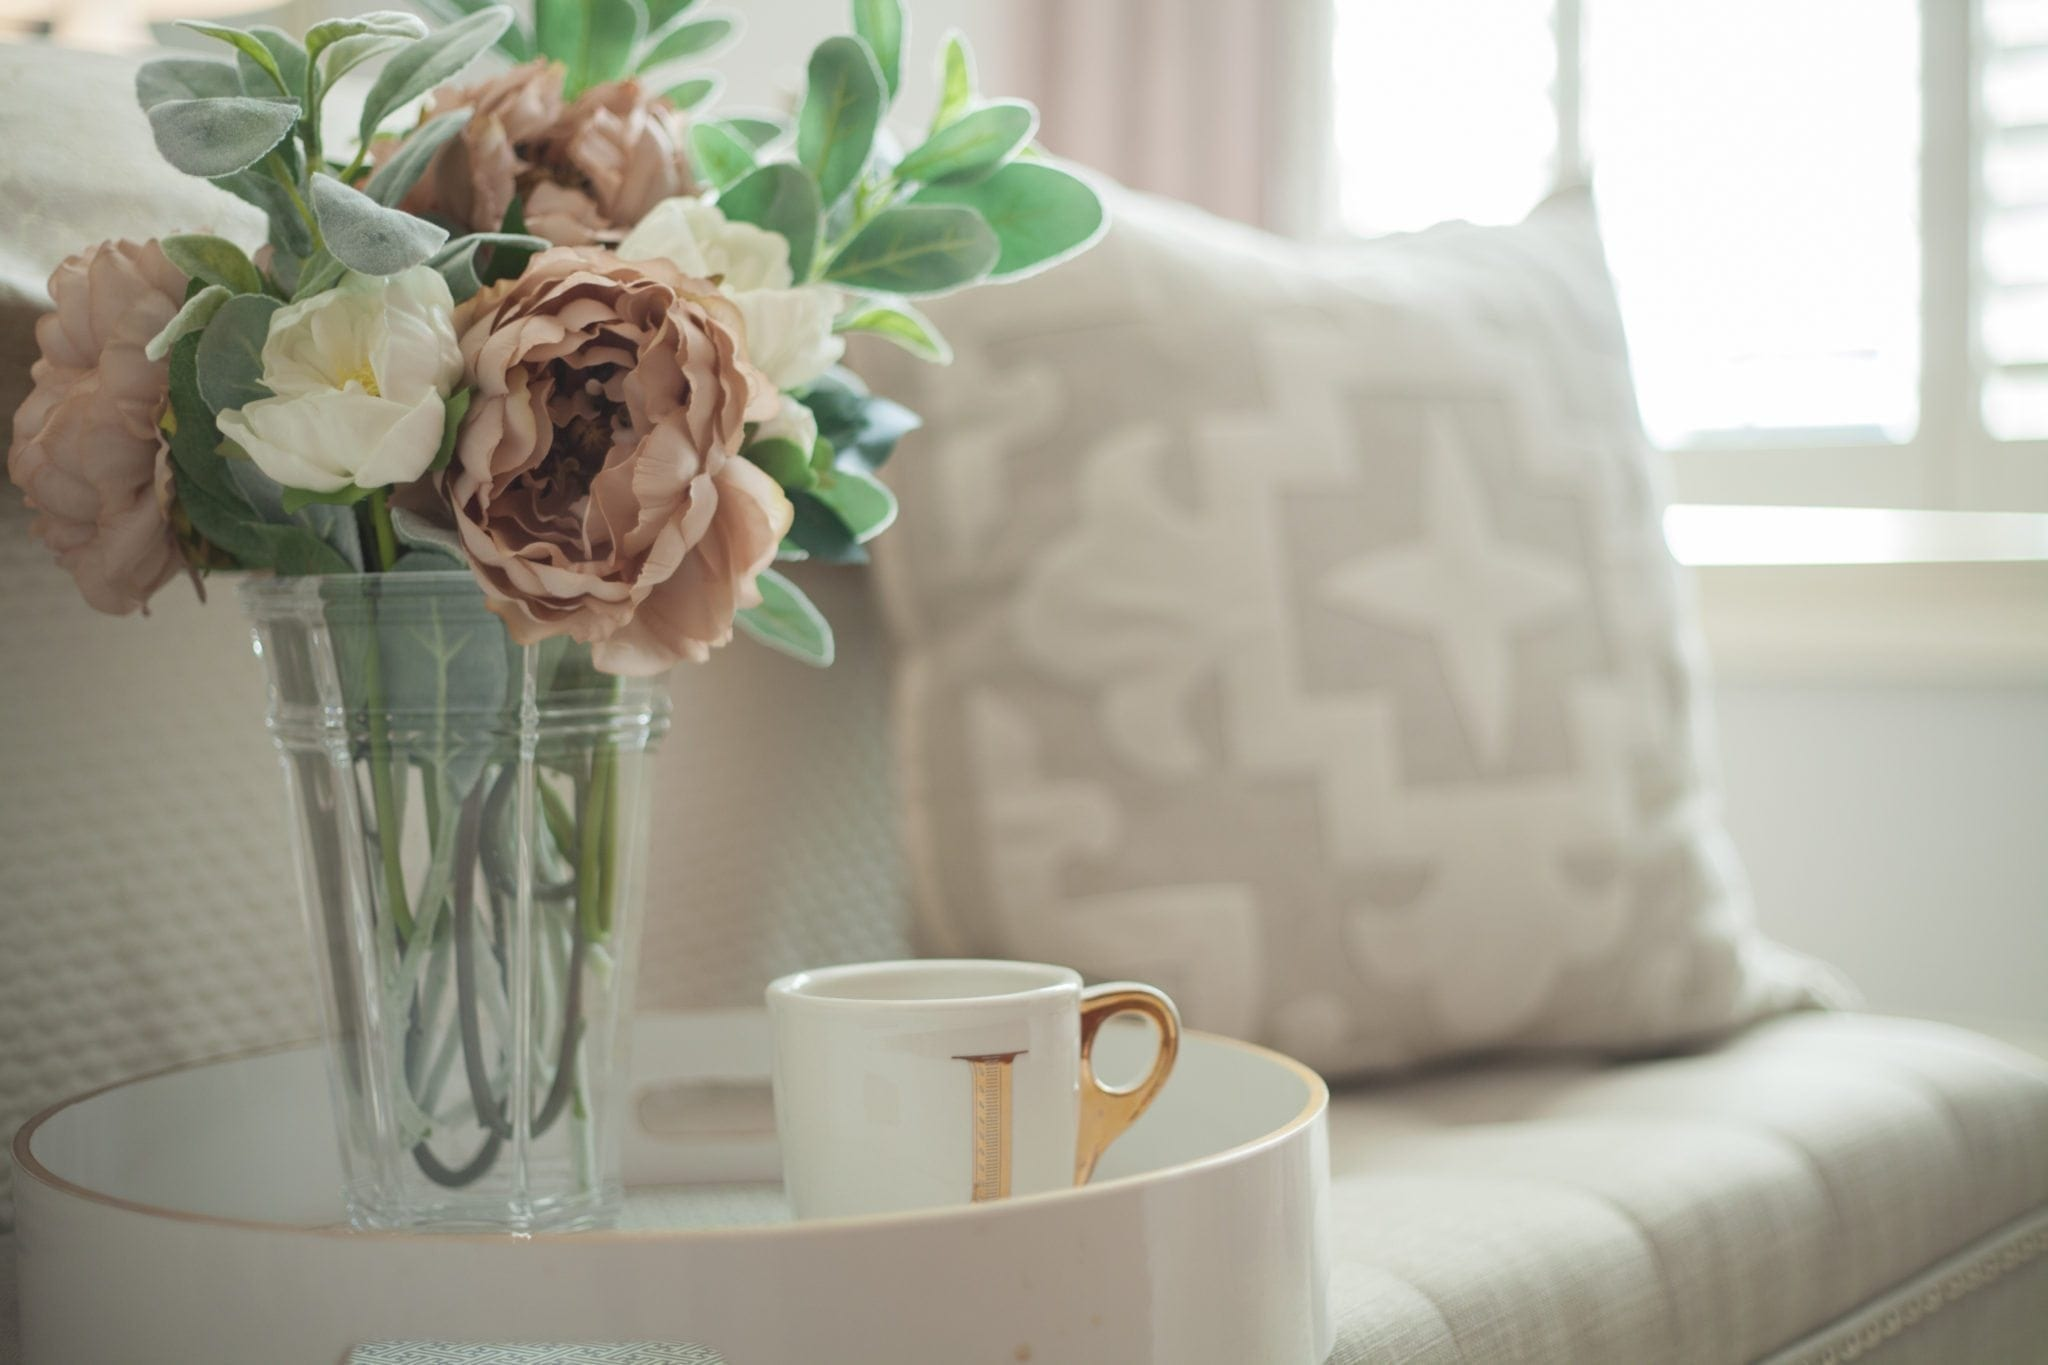 Silk flowers with neutral white and cream pillow with Anthropologie mug.